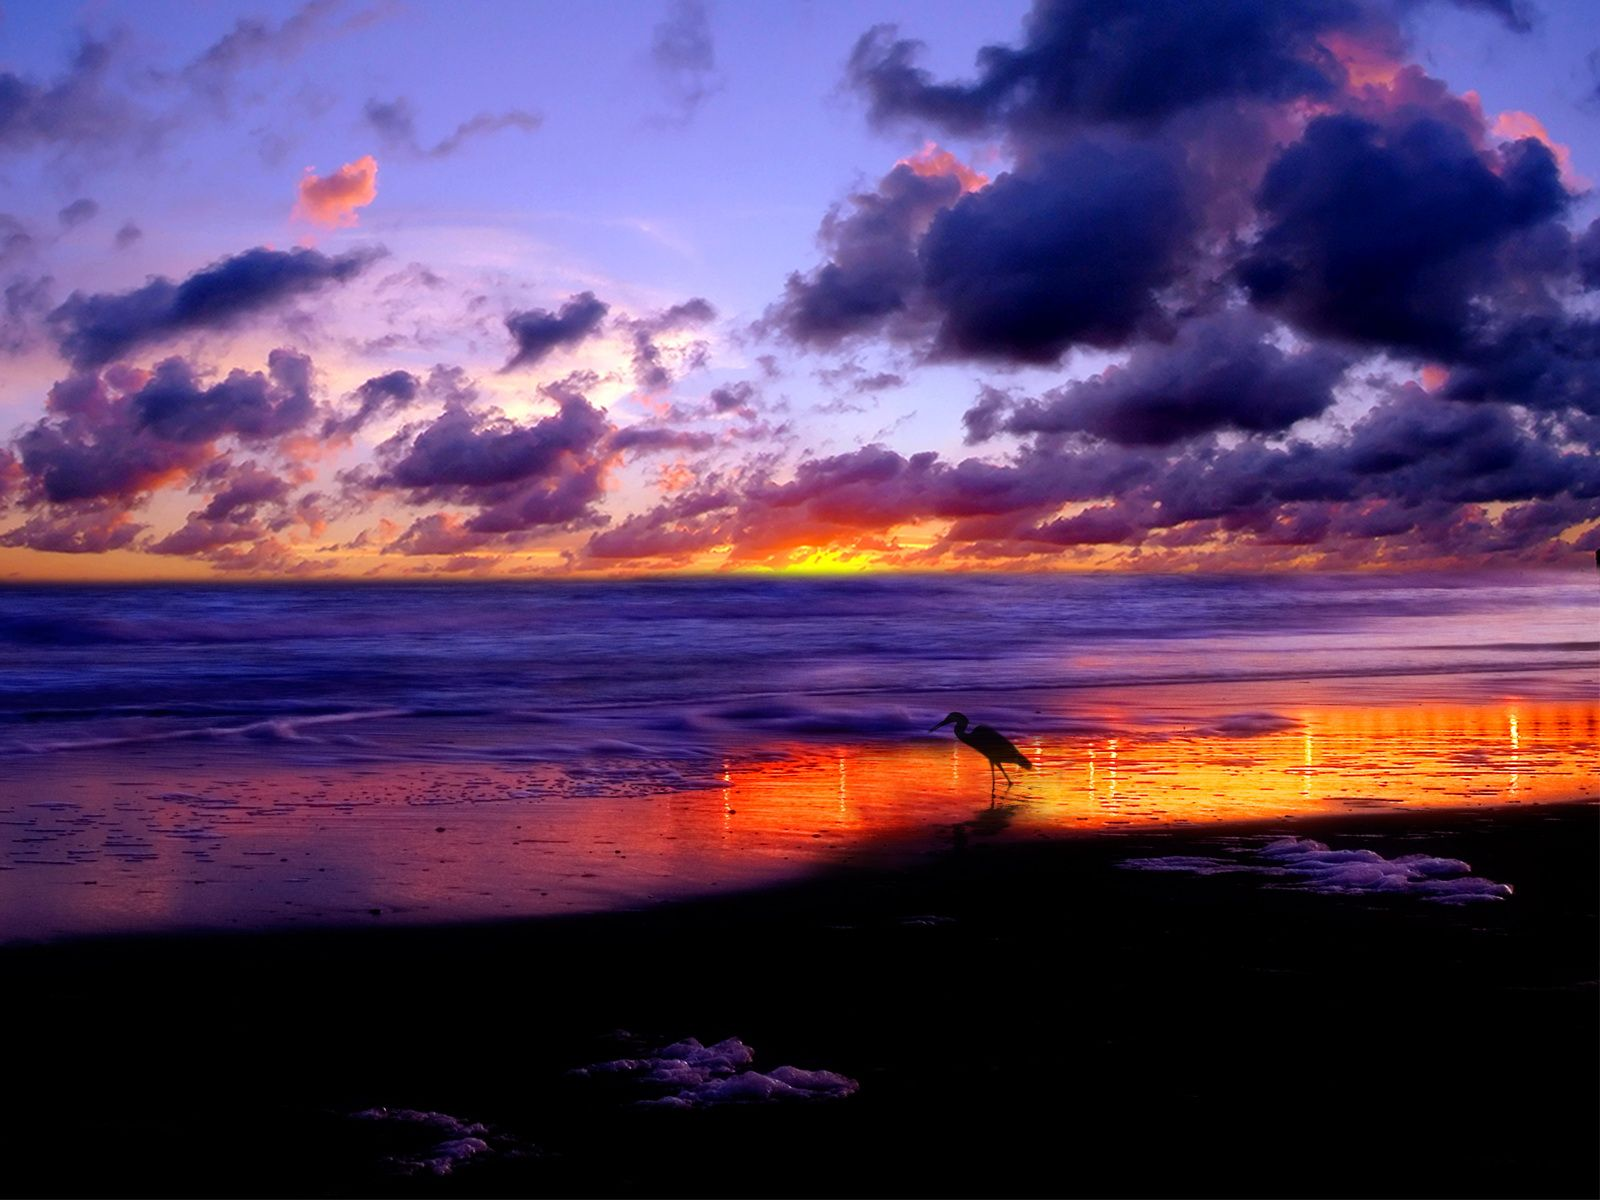 Roundup 40 Breathtaking Nature Wallpapers Hq 1600 1200 Beach Sunset Wallpaper Sunset Wallpaper Sunrise Wallpaper